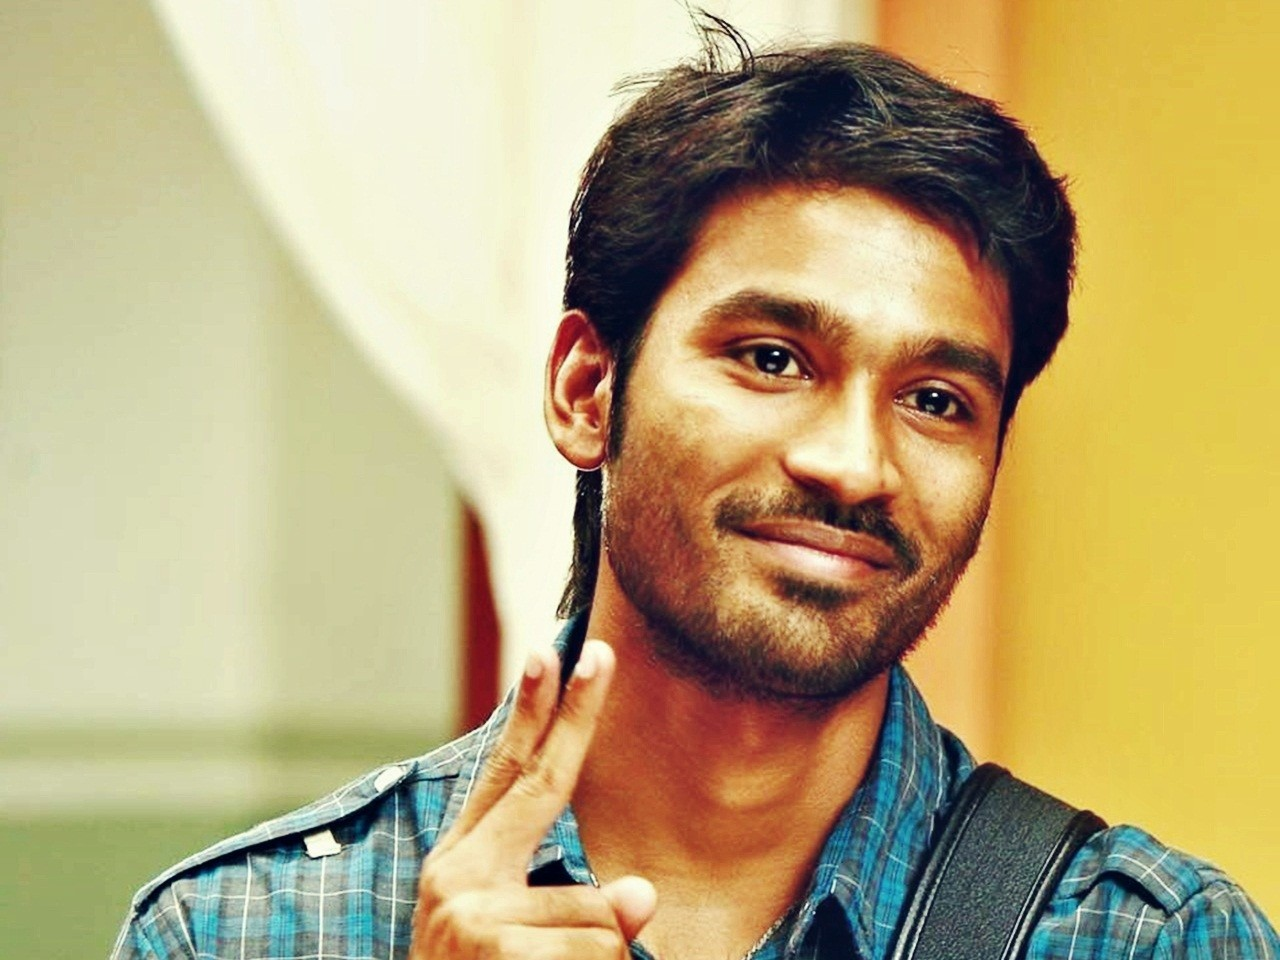 dhanush images photos latest hd wallpapers free download dhanush images photos latest hd